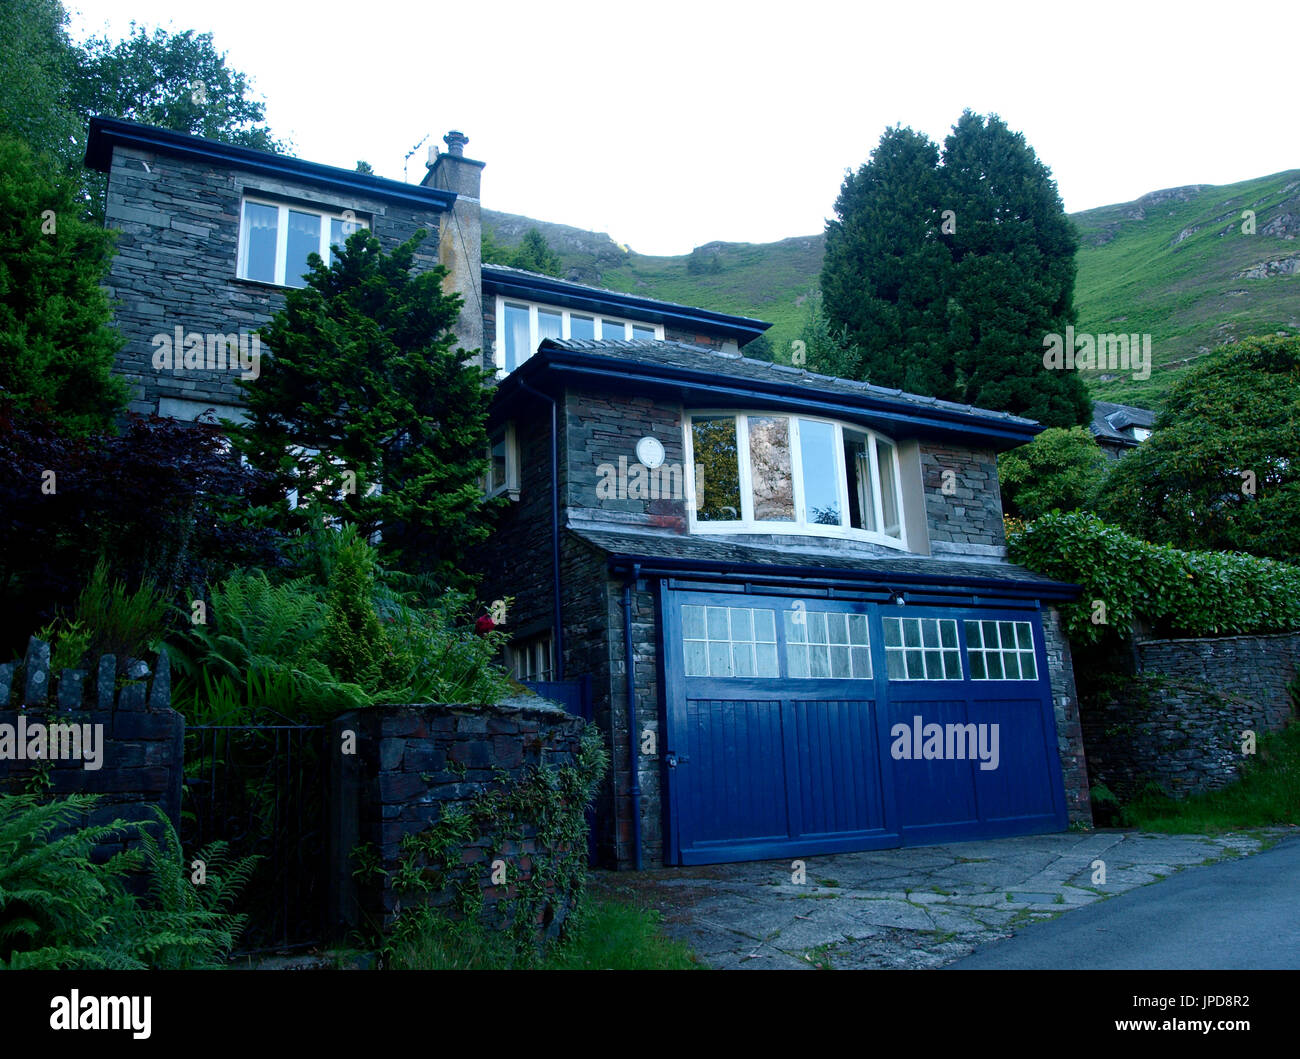 House where Sir Hugh Walpole OBE wrote most of his work, Derwentwater, The Lake District, Cumbria, UK - Stock Image